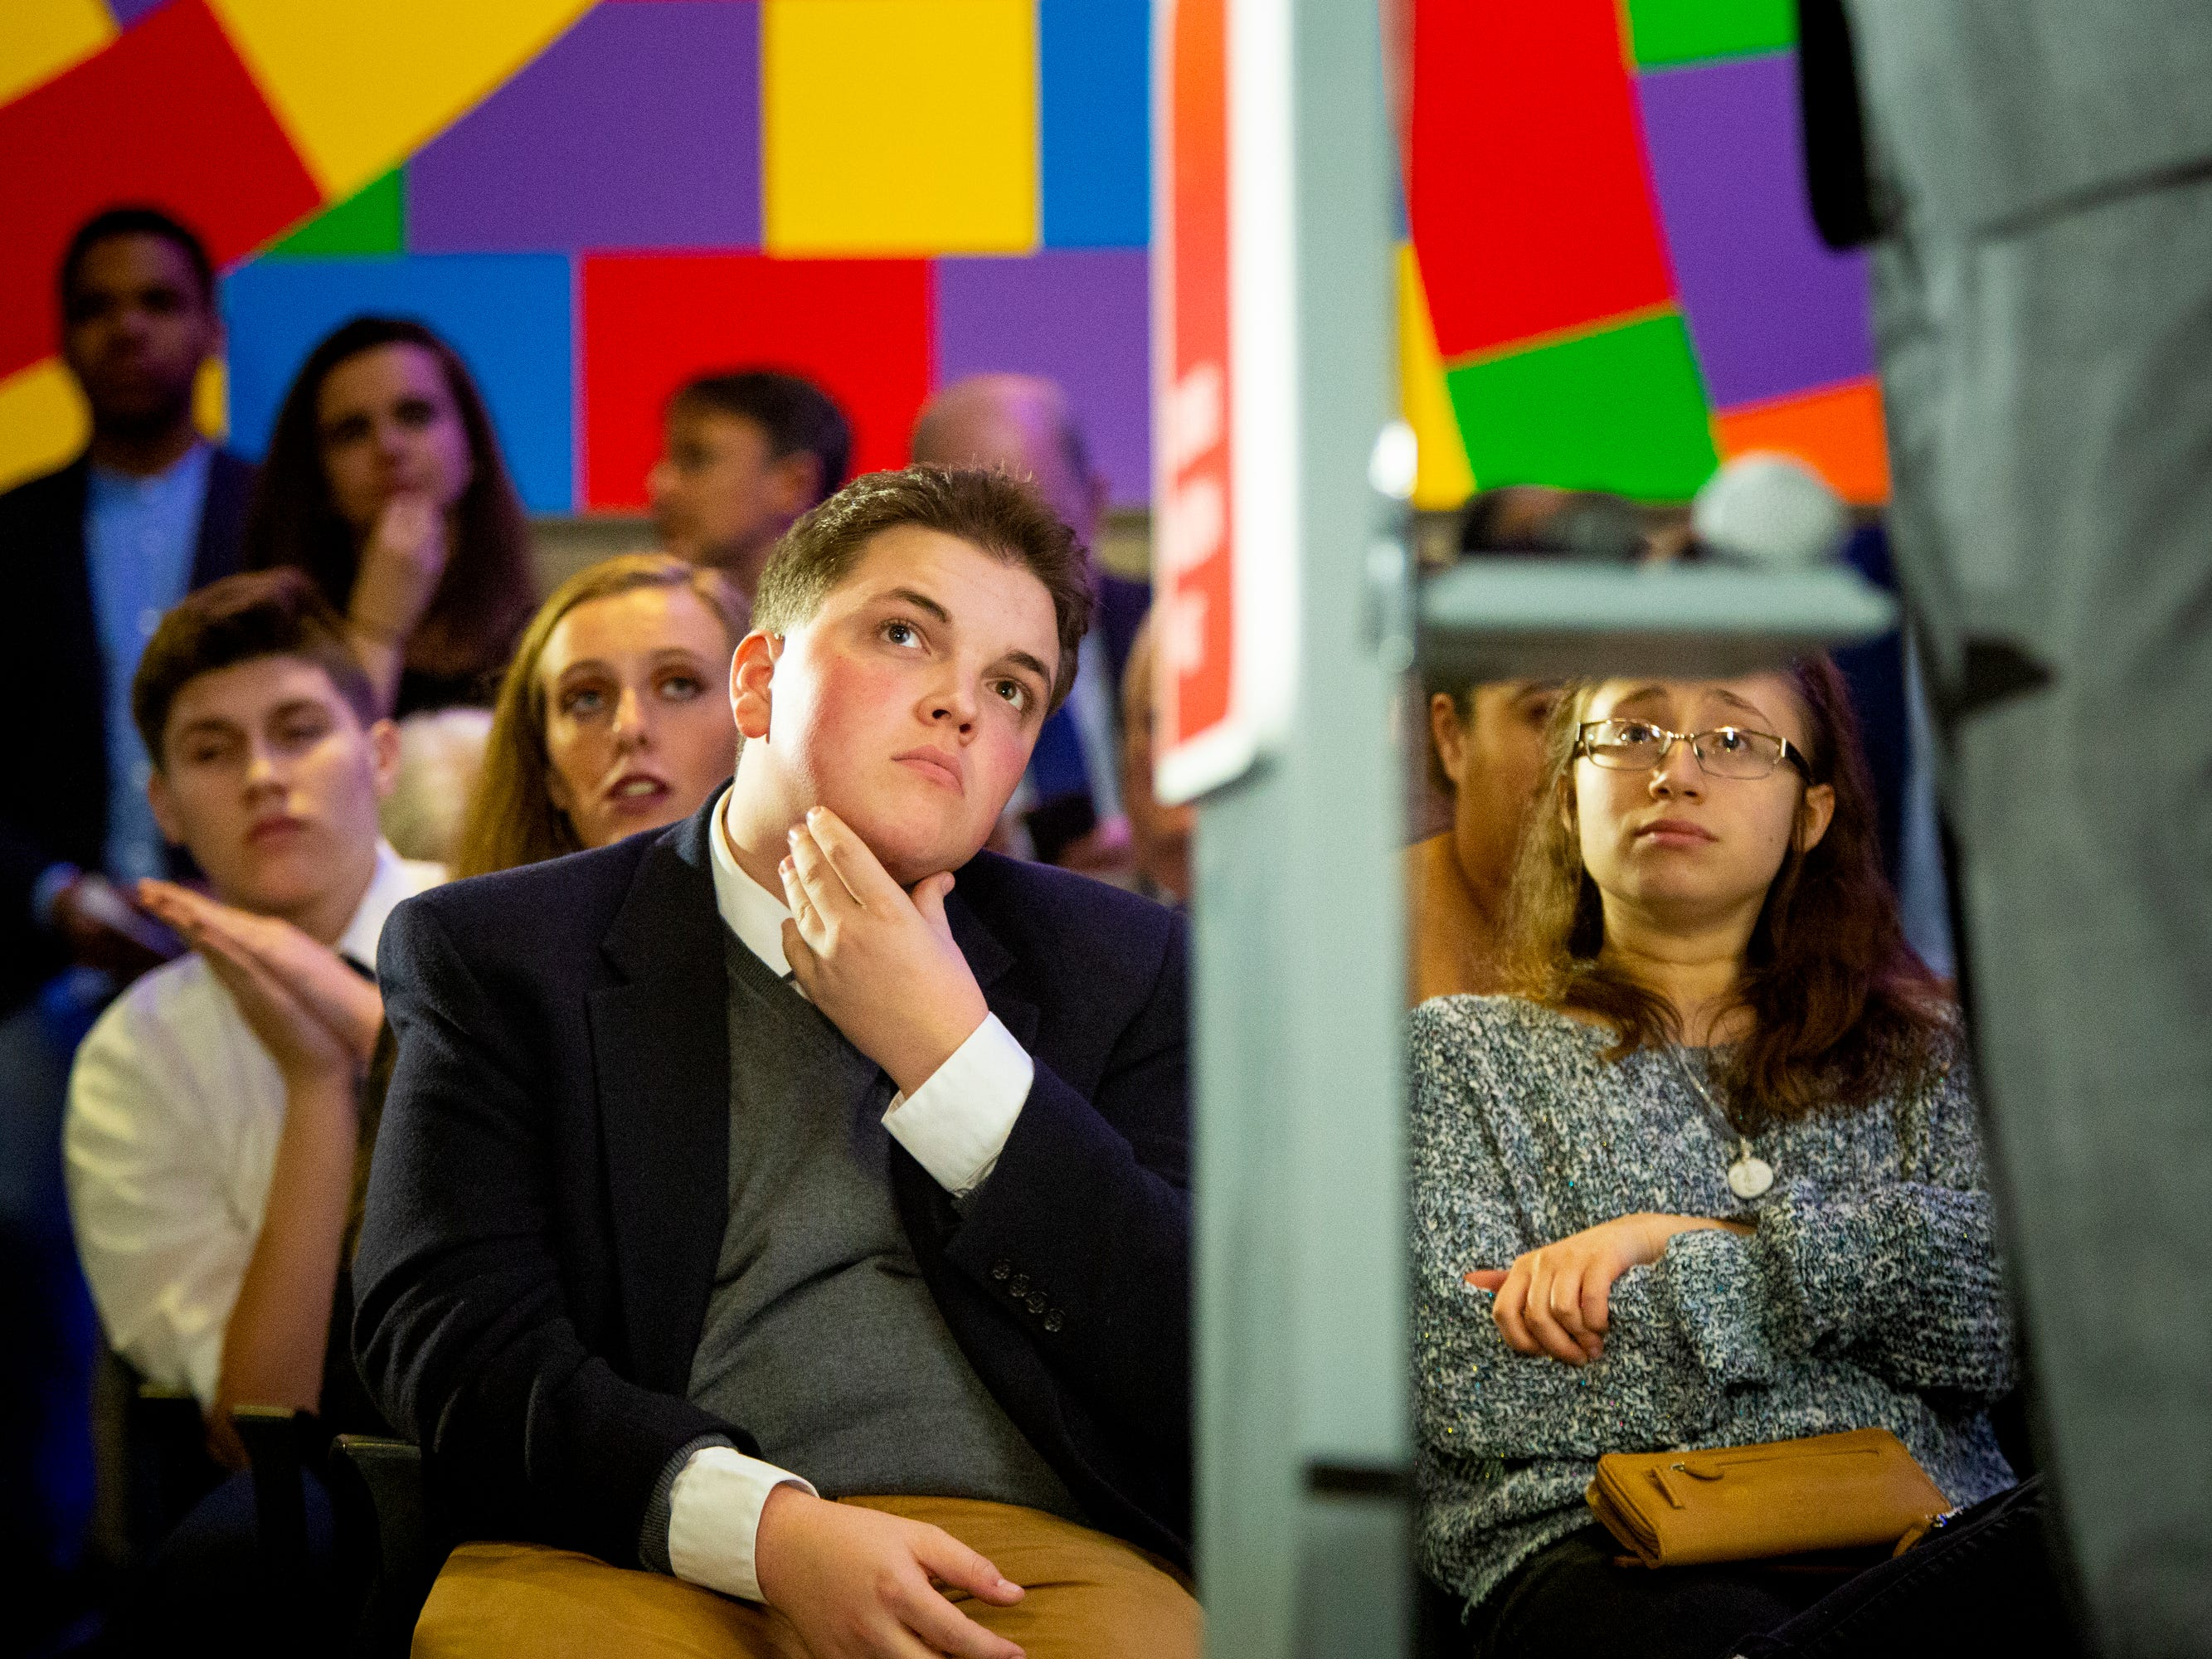 New Hampshire Young Democrats listen to Senator Sherrod Brown deliver the keynote speech at the Granite Slate Awards at the Currier Museum in Manchester, N.H. Saturday, February 9, 2019.